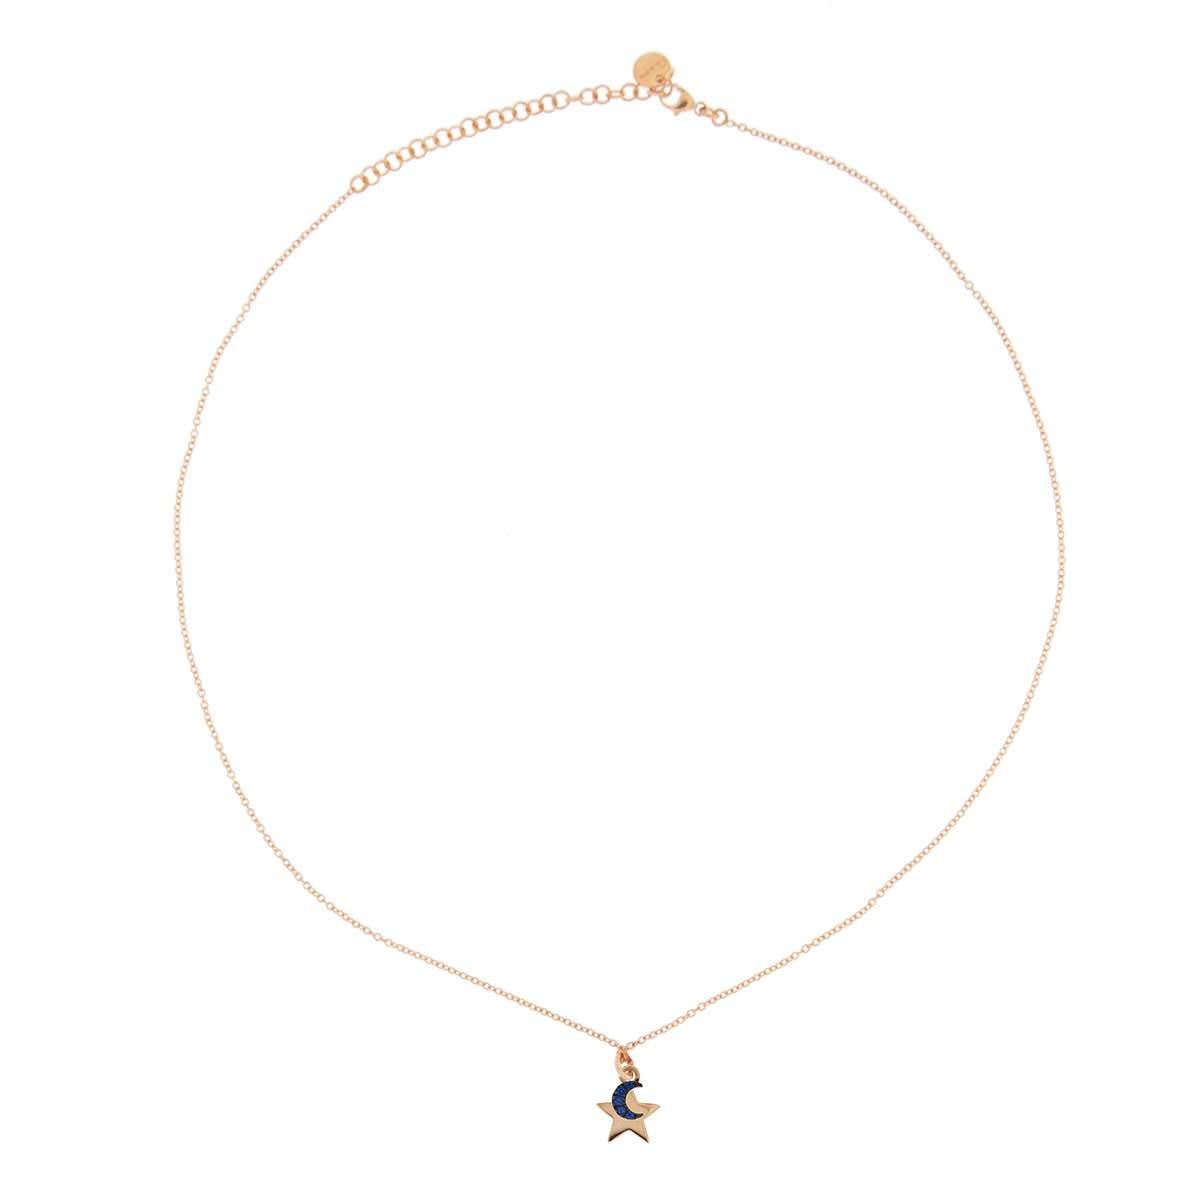 Rose Gold Chain Choker with rounded pendant and Micro Zircons - Star/Moon